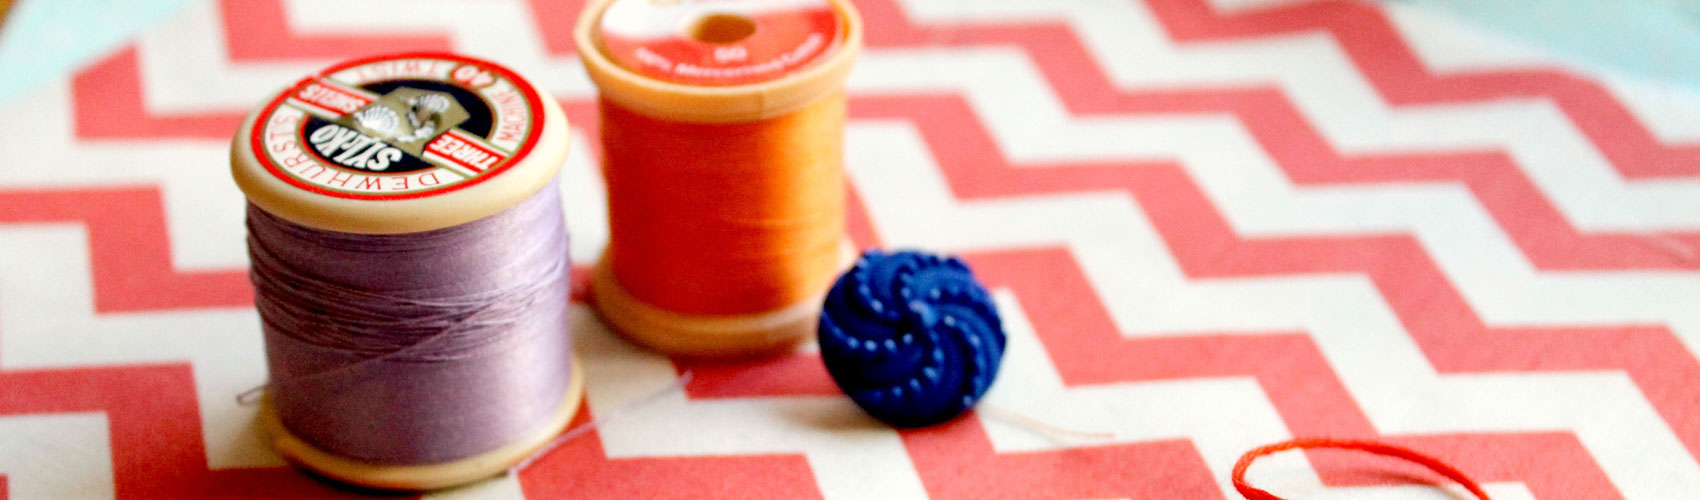 sewing-586206